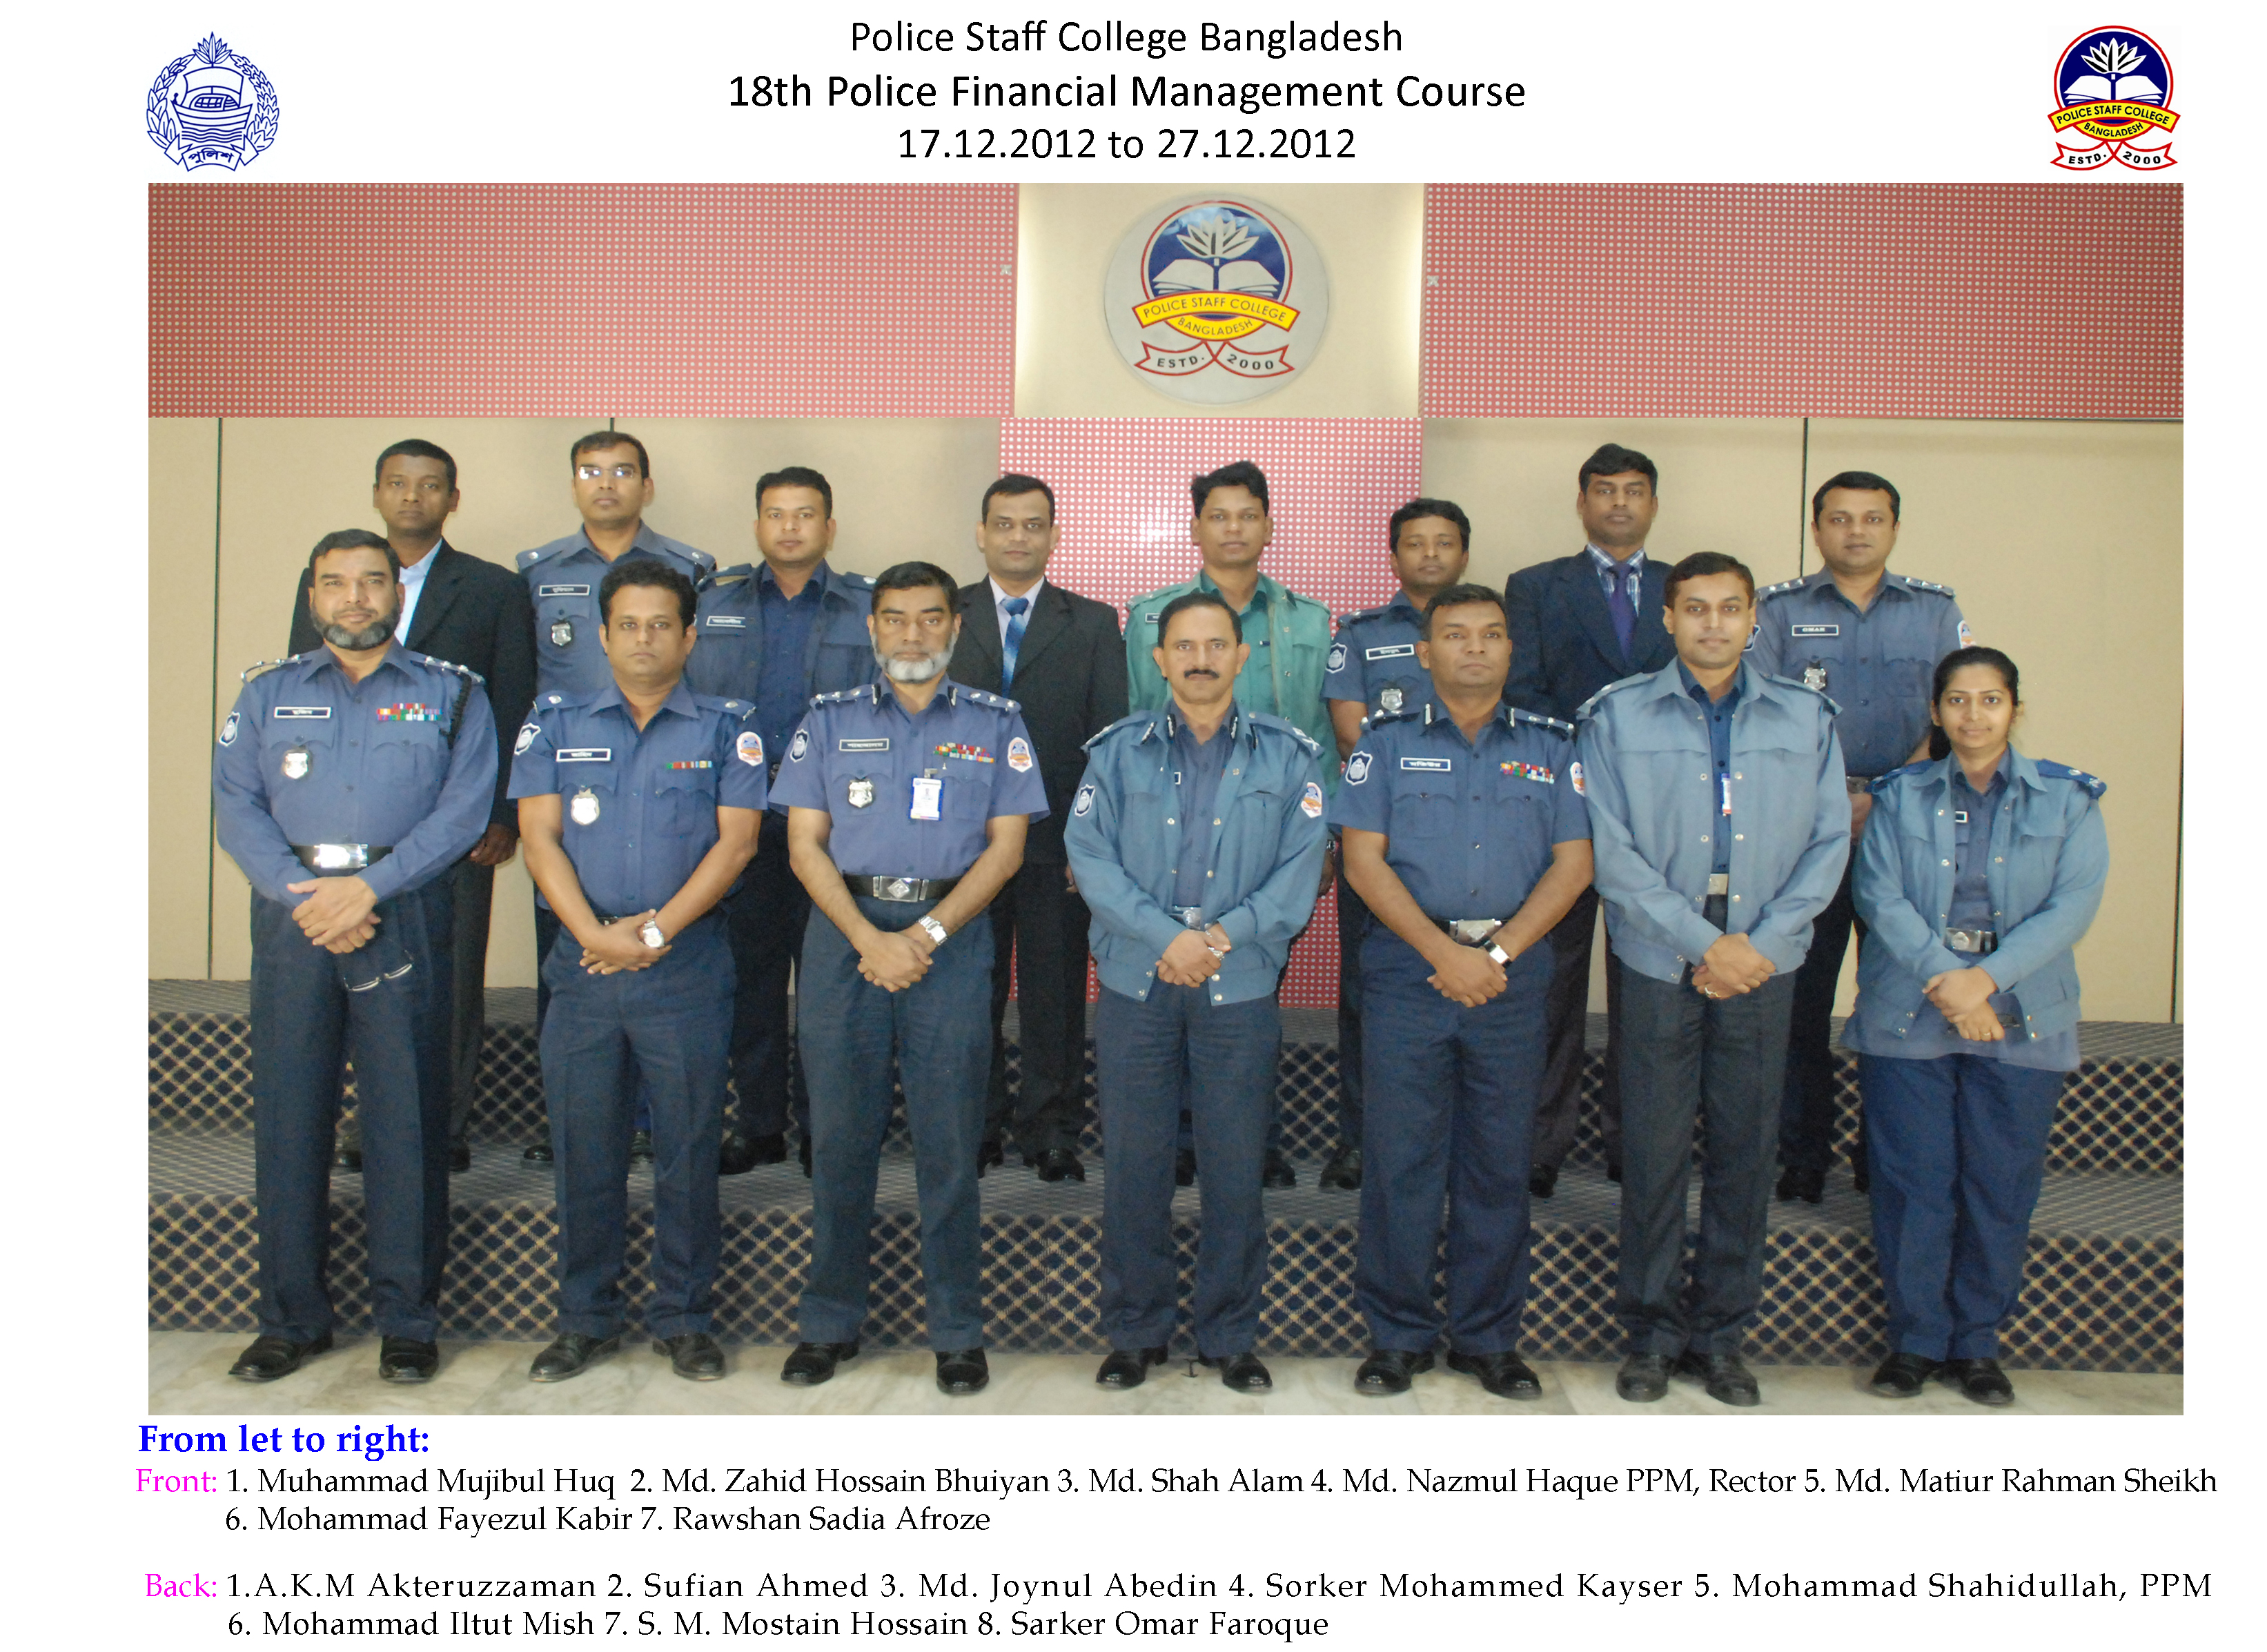 Participant of 18th Police Financial Management Course.